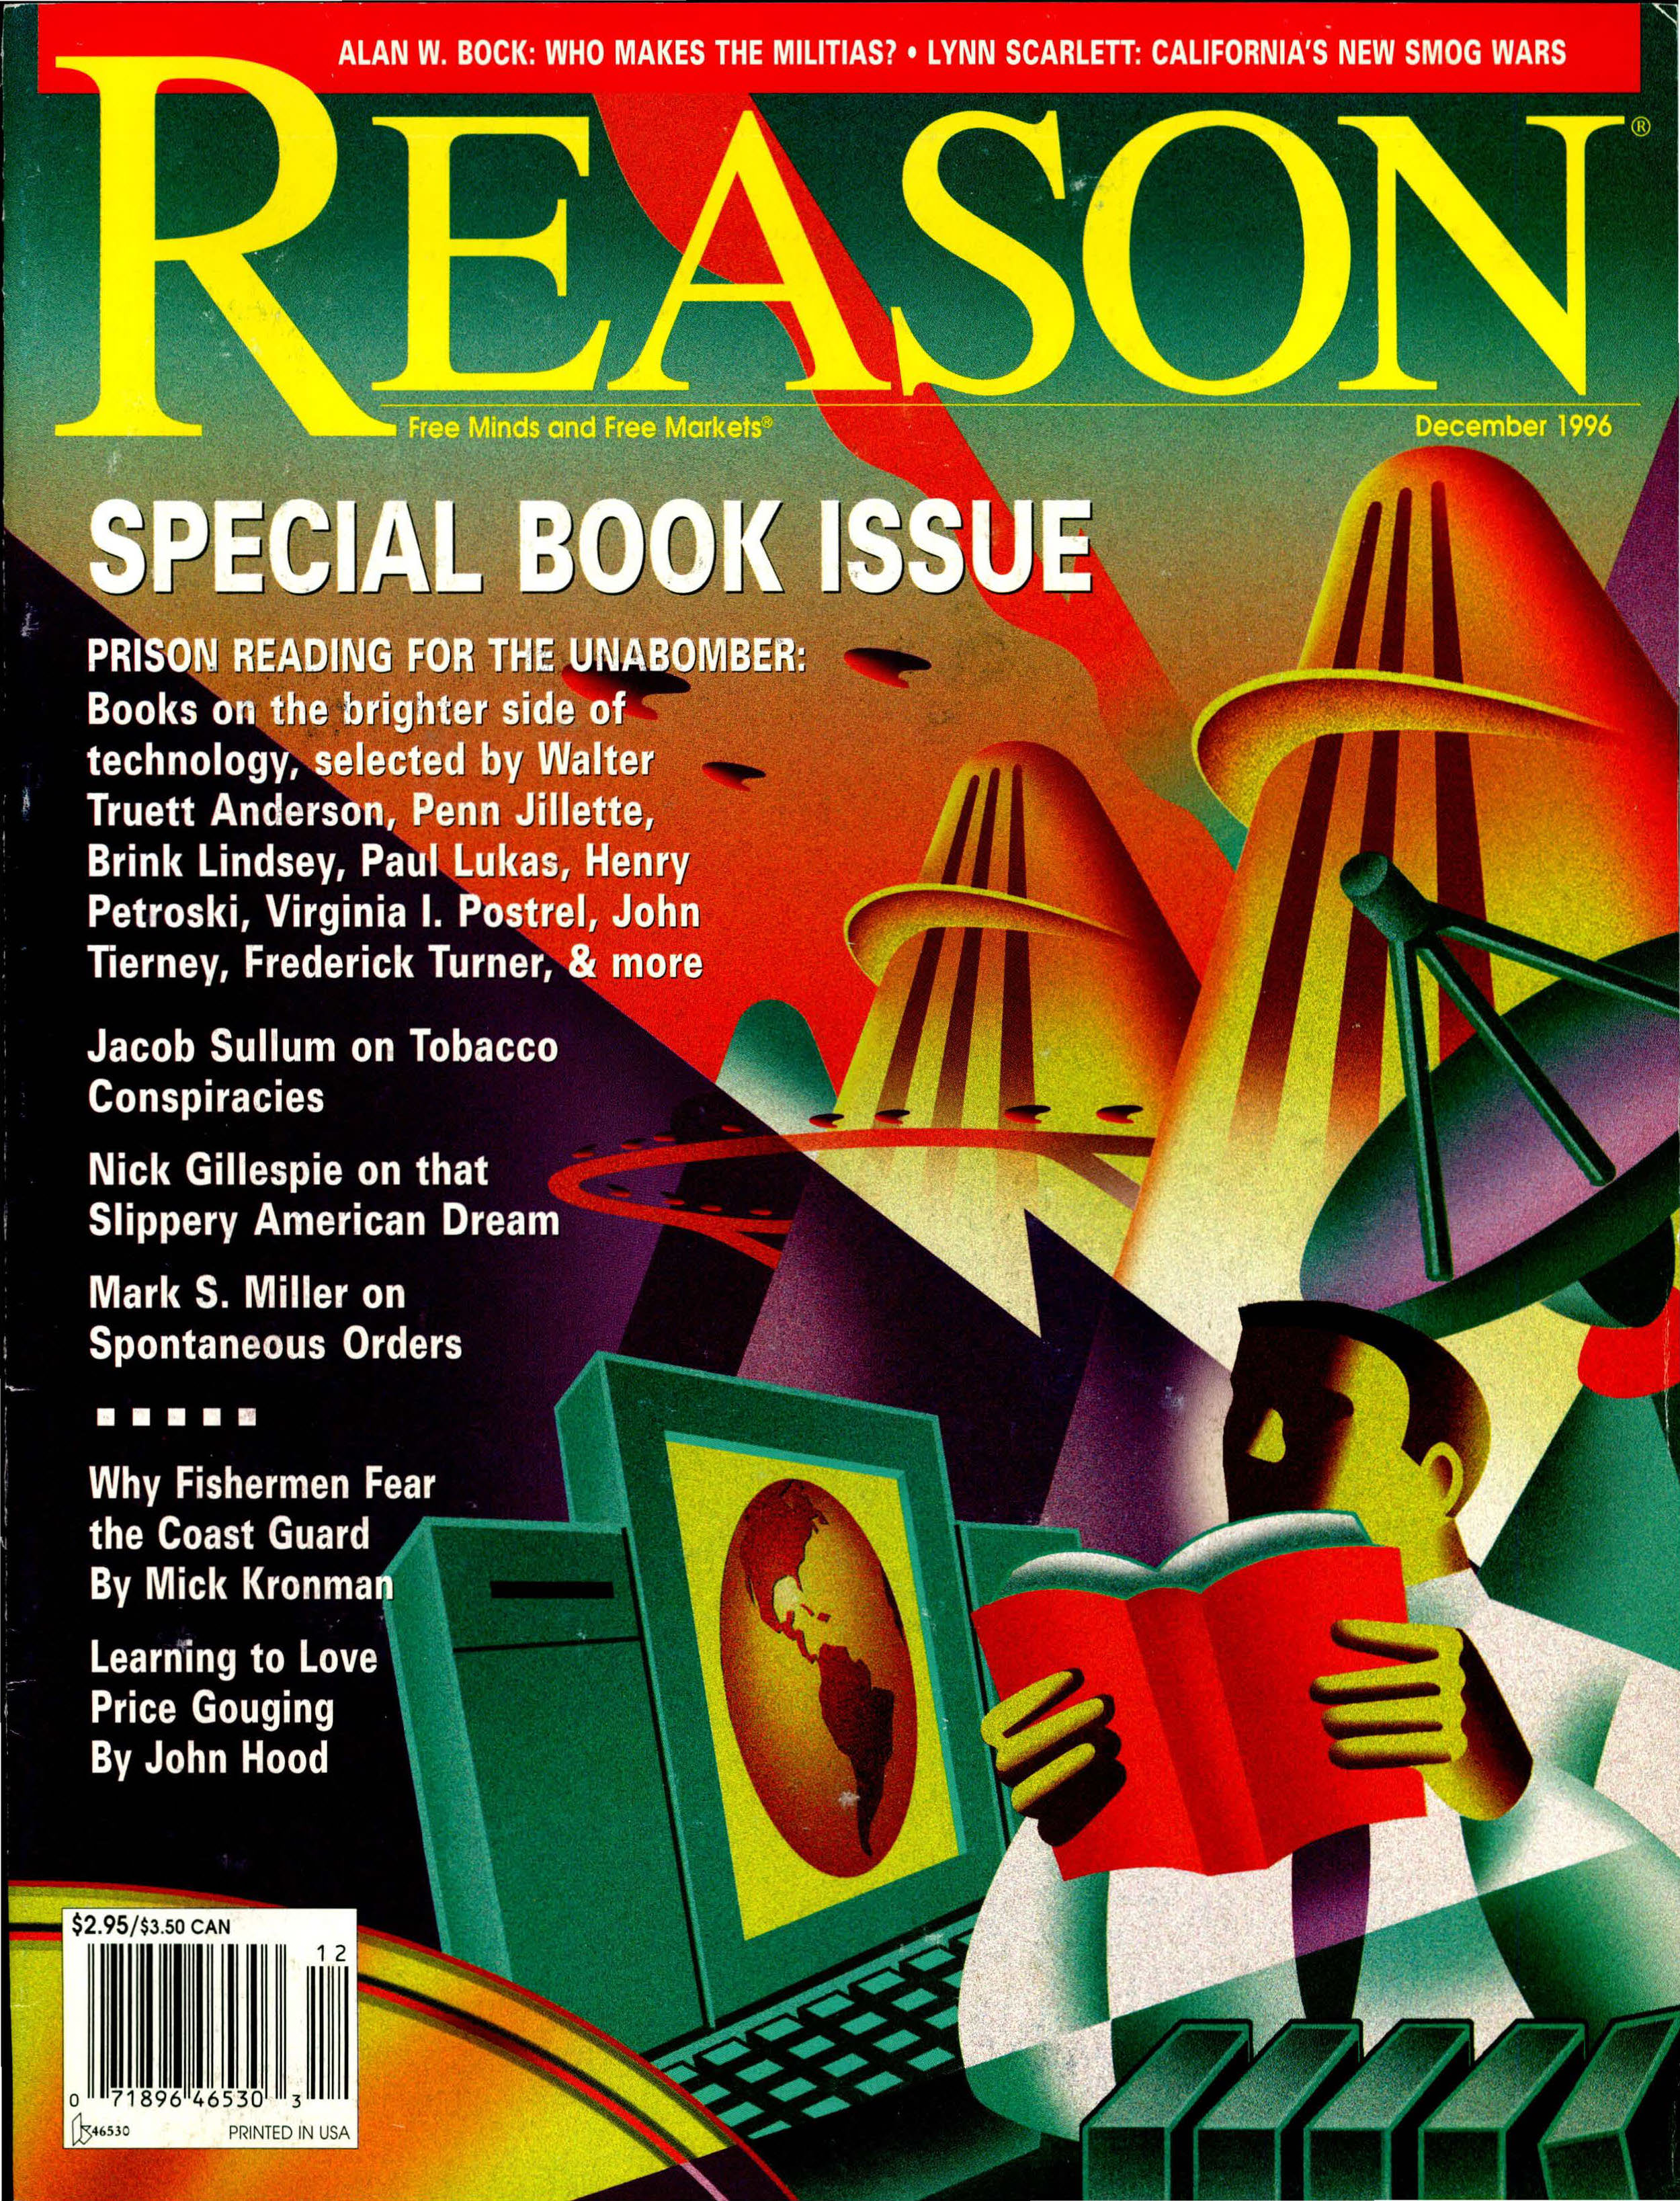 Reason Magazine, December 1996 cover image